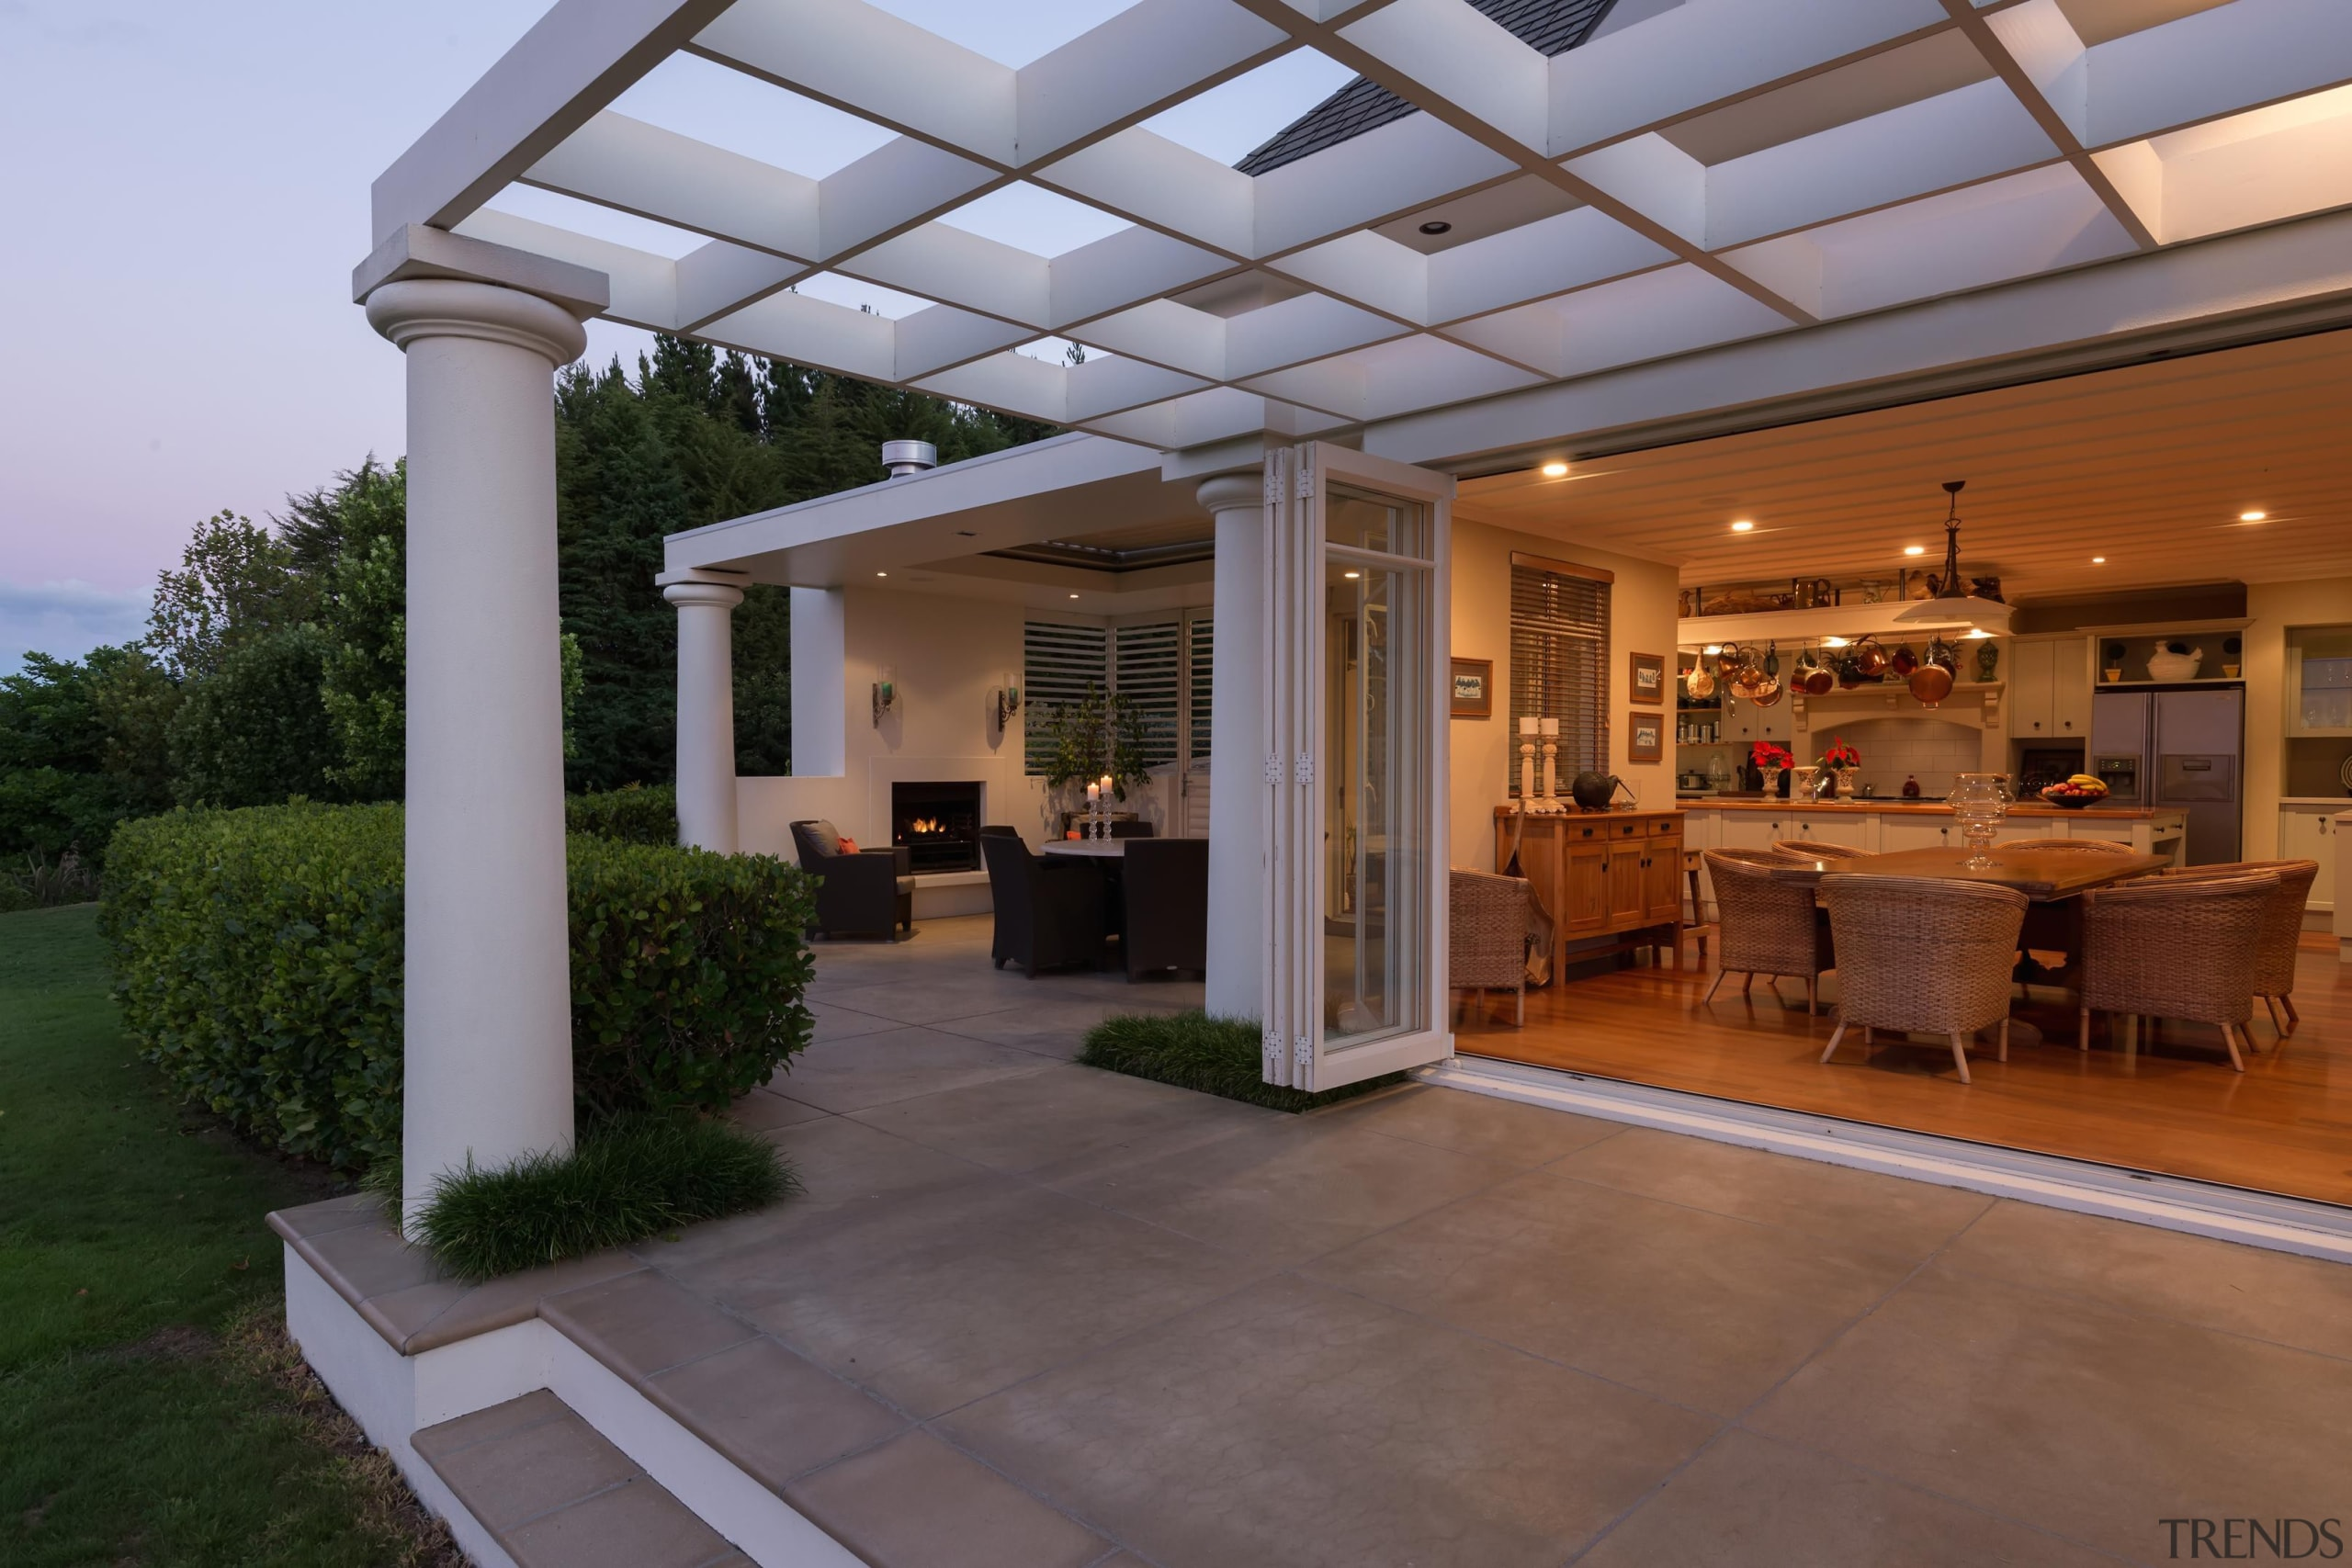 Whitford 7 - estate | floor | flooring estate, floor, flooring, home, outdoor structure, patio, property, real estate, roof, gray, brown